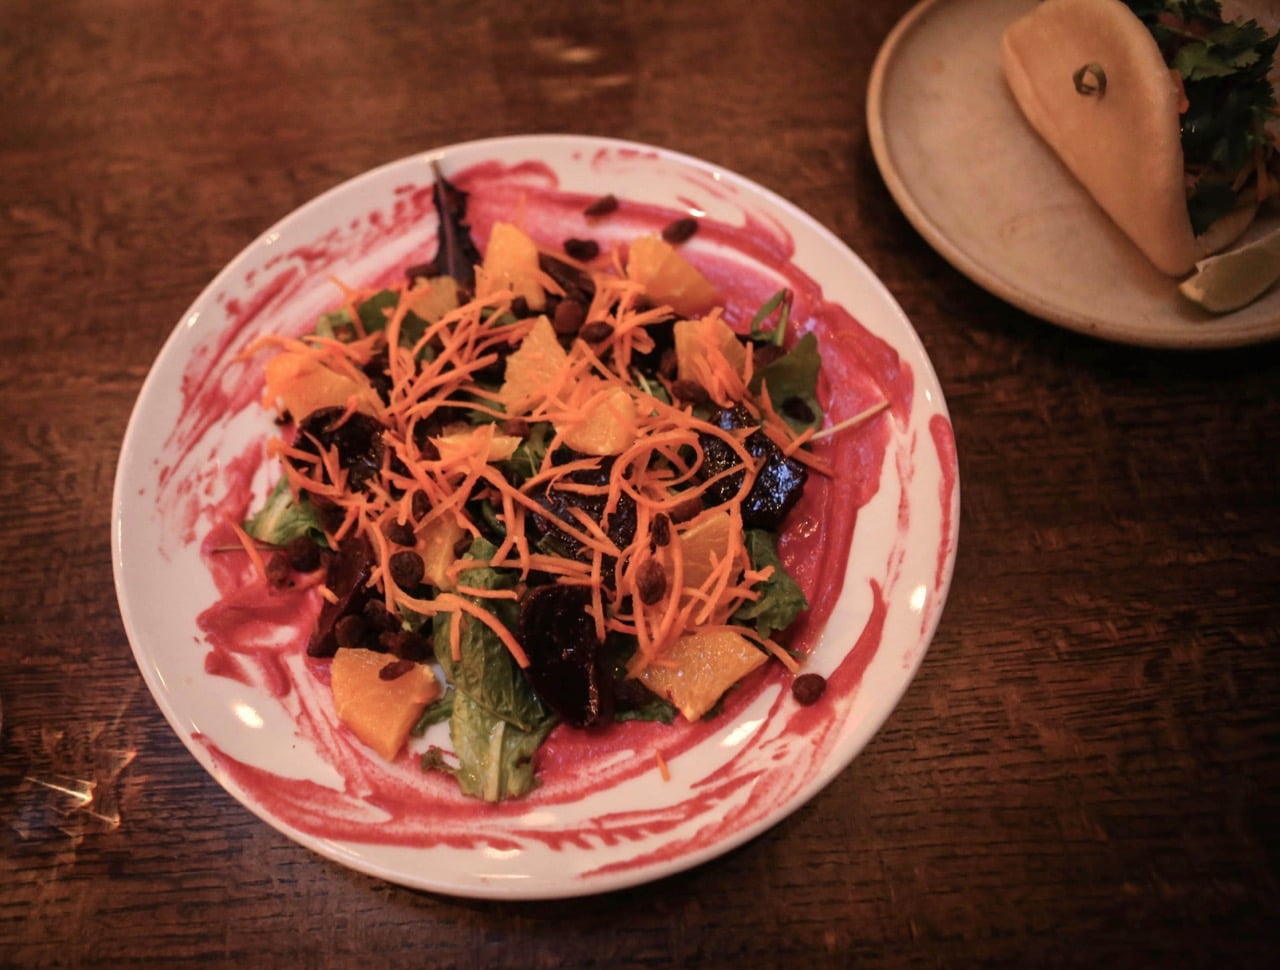 Stratford Restaurants: Roasted Beet Salad at Mercer Kitchen.